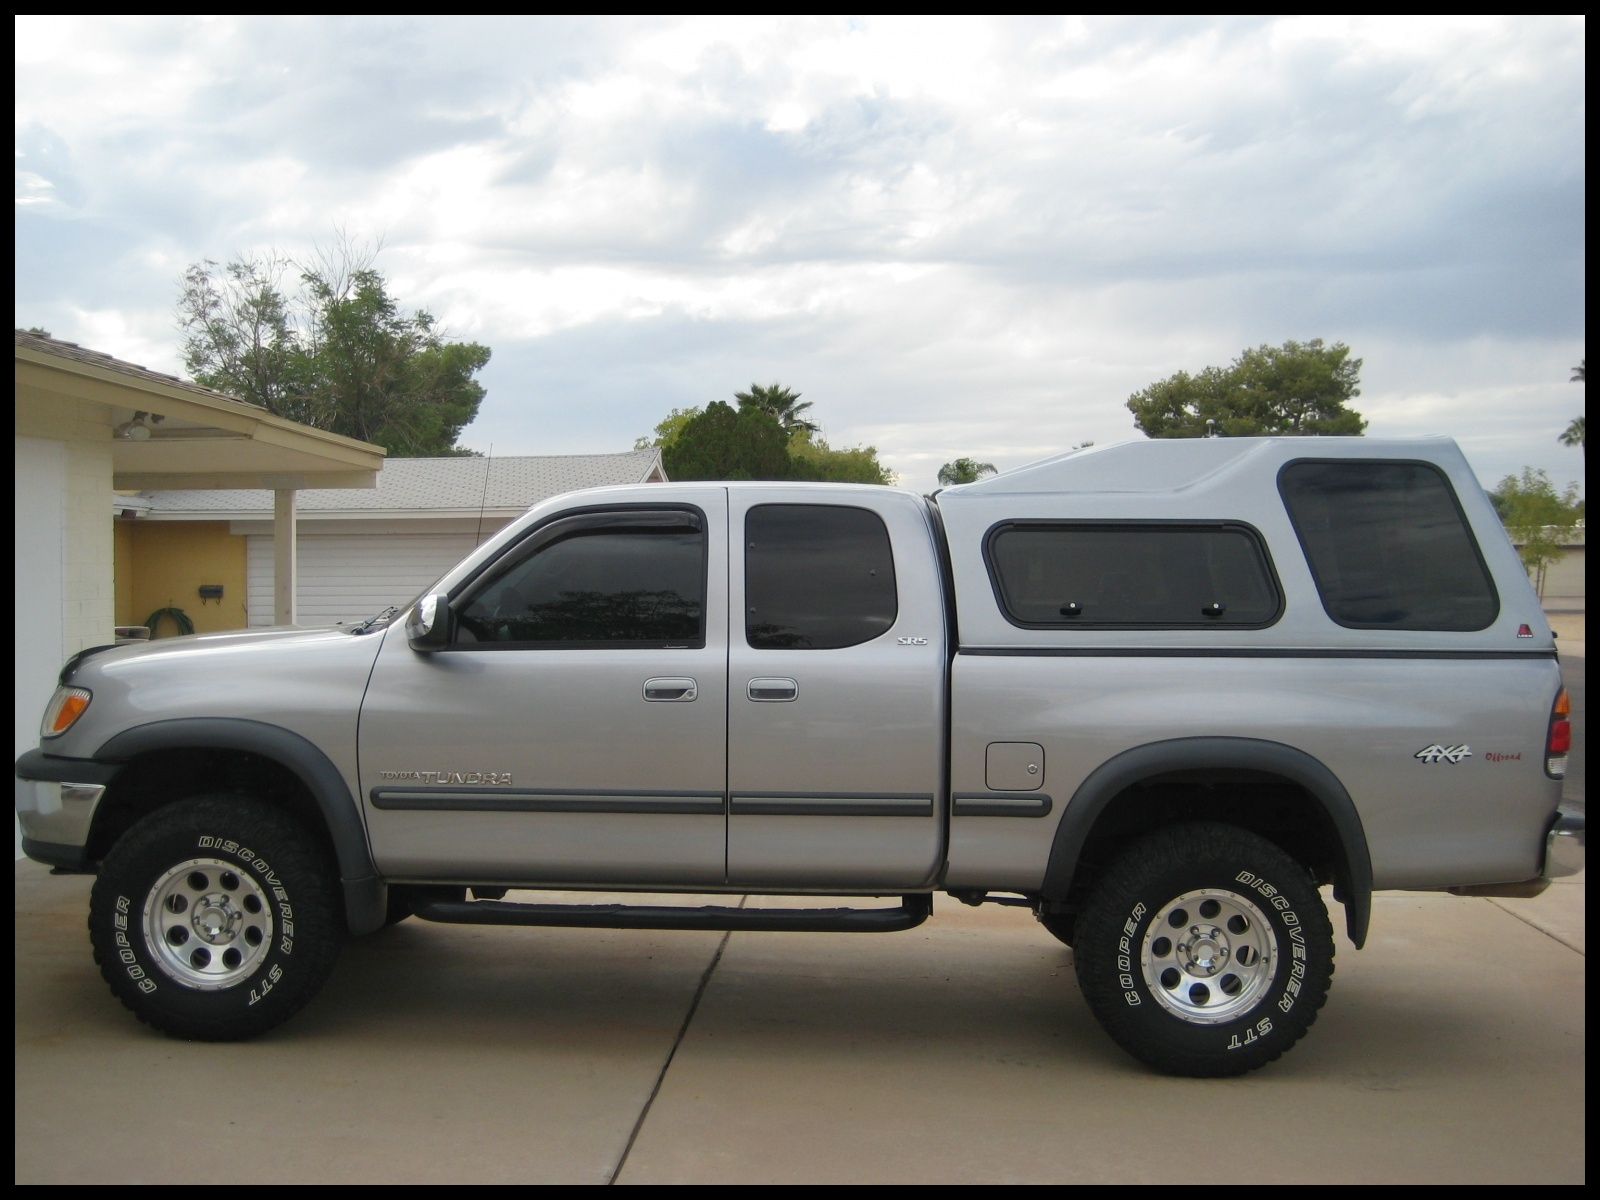 11 s Gallery of Best Toyota Tundra Camper Shell Design